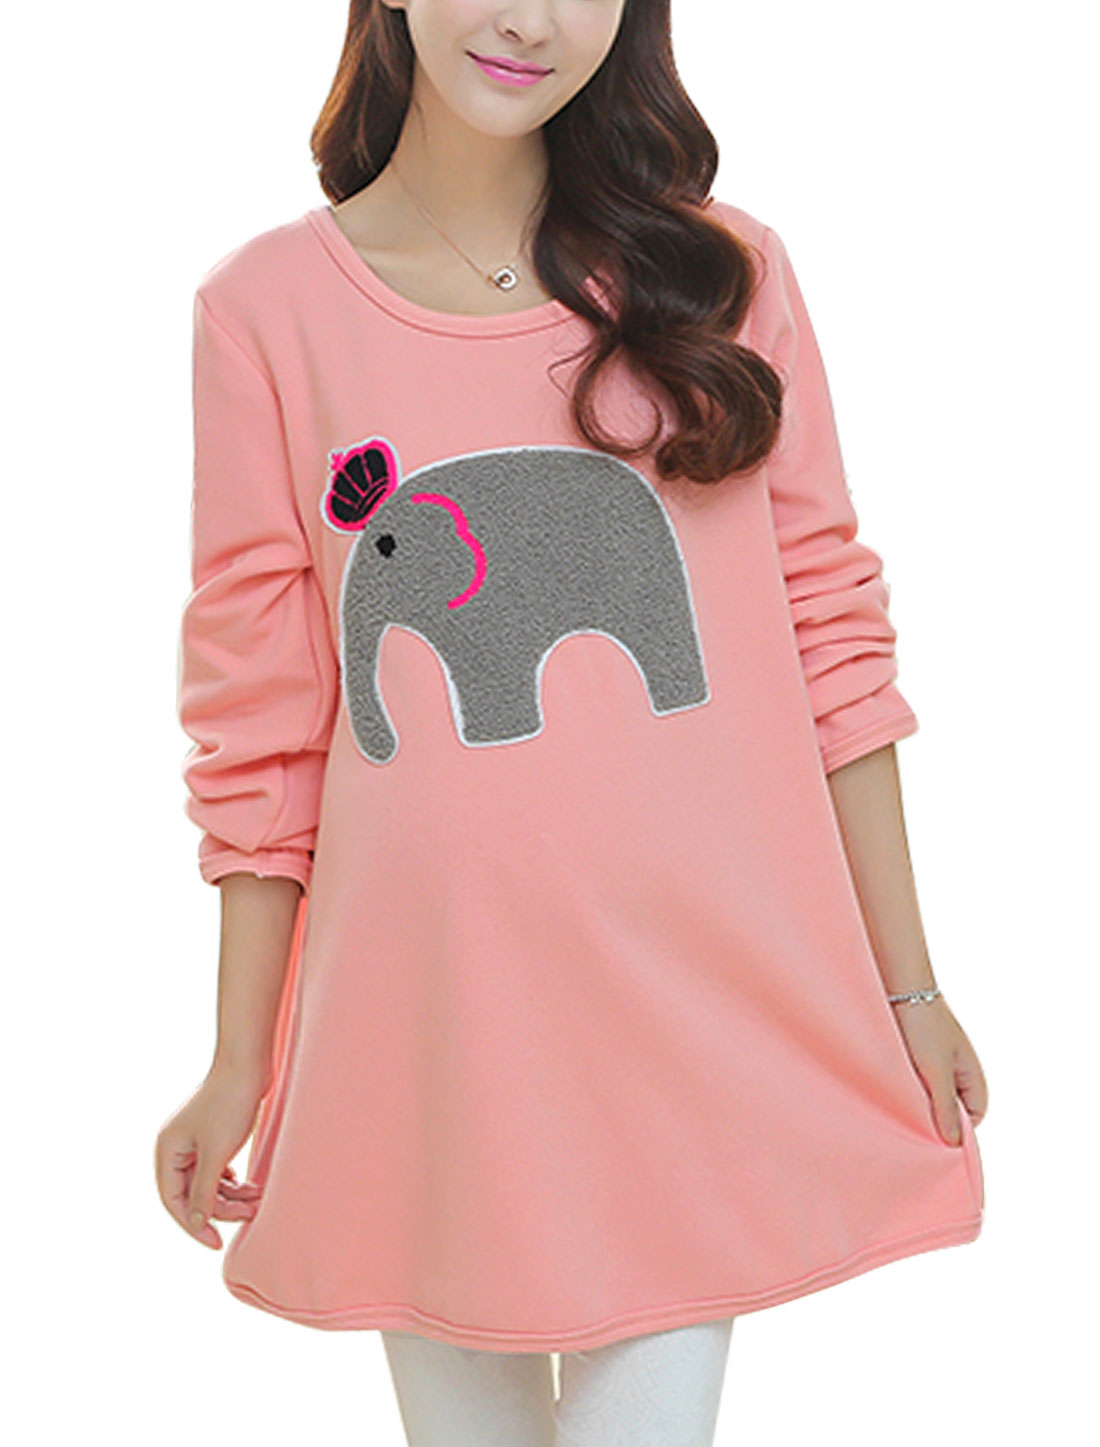 Maternity Soft A Line Fleece Lined Elephant Applique Dress Coral Pink L